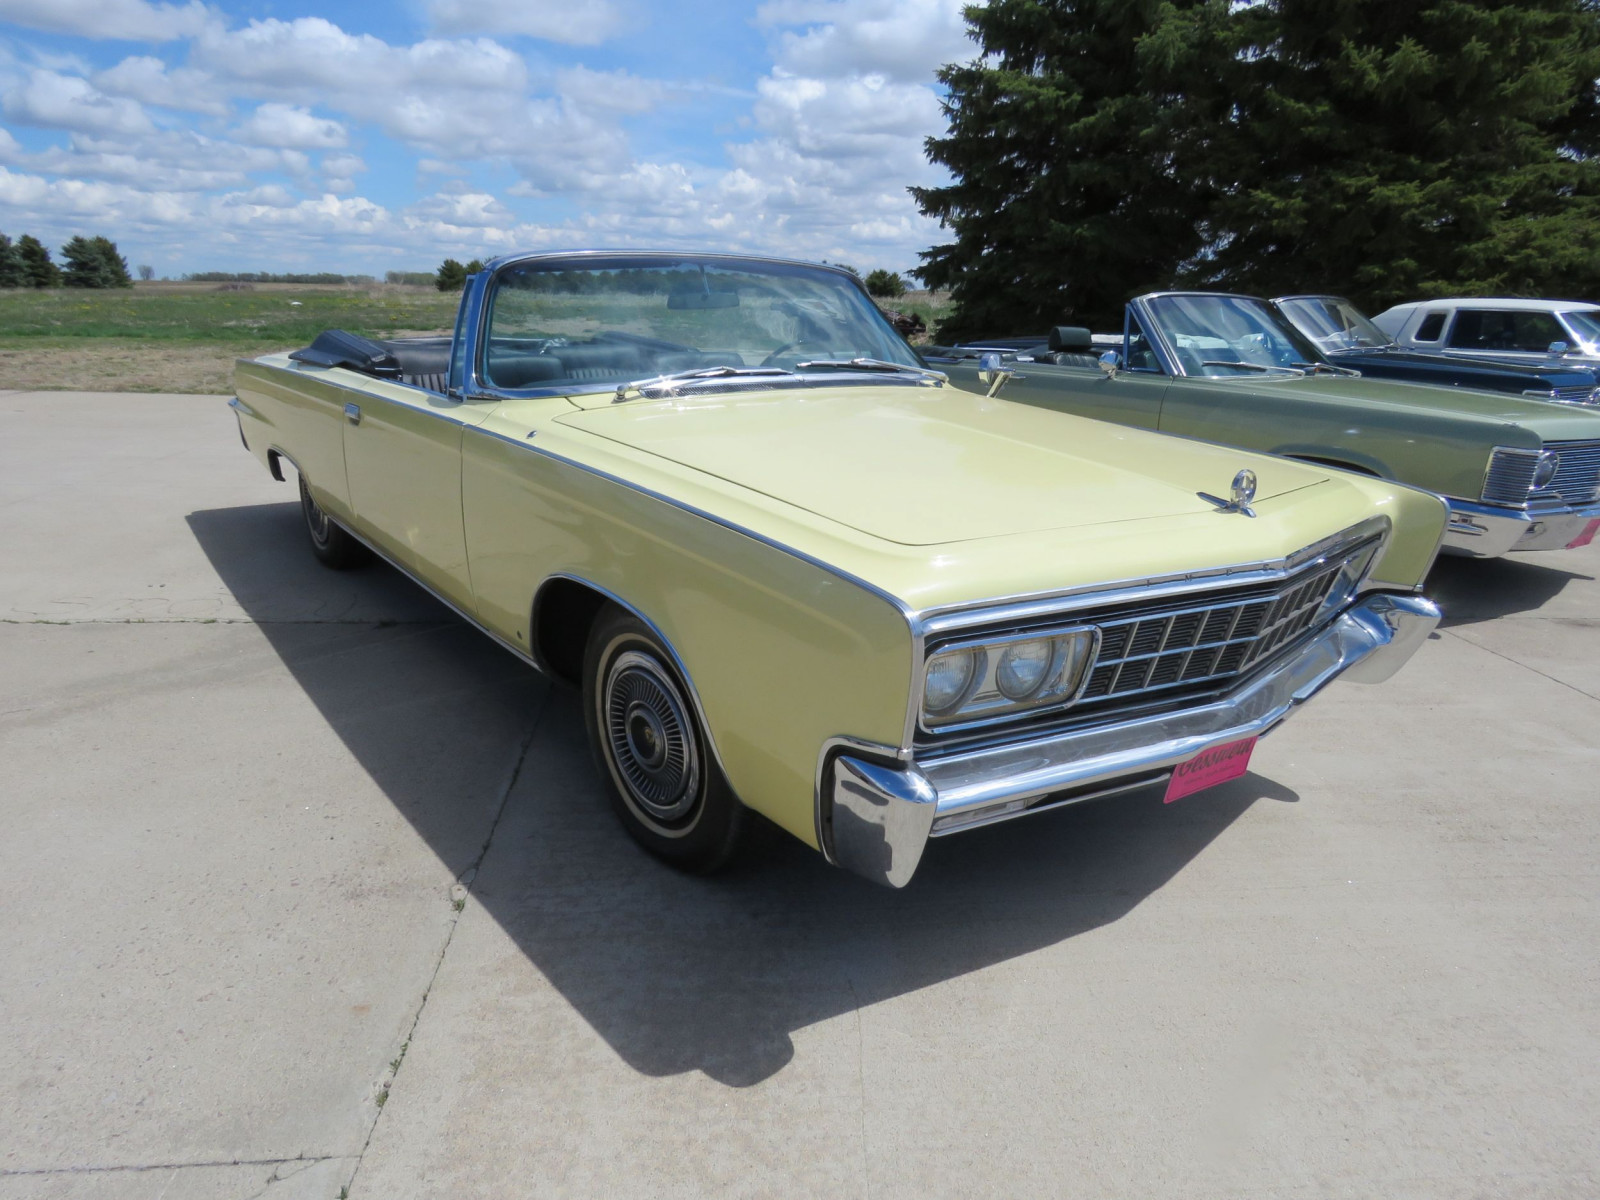 1966 Chrysler Imperial Crown Convertible - Image 3